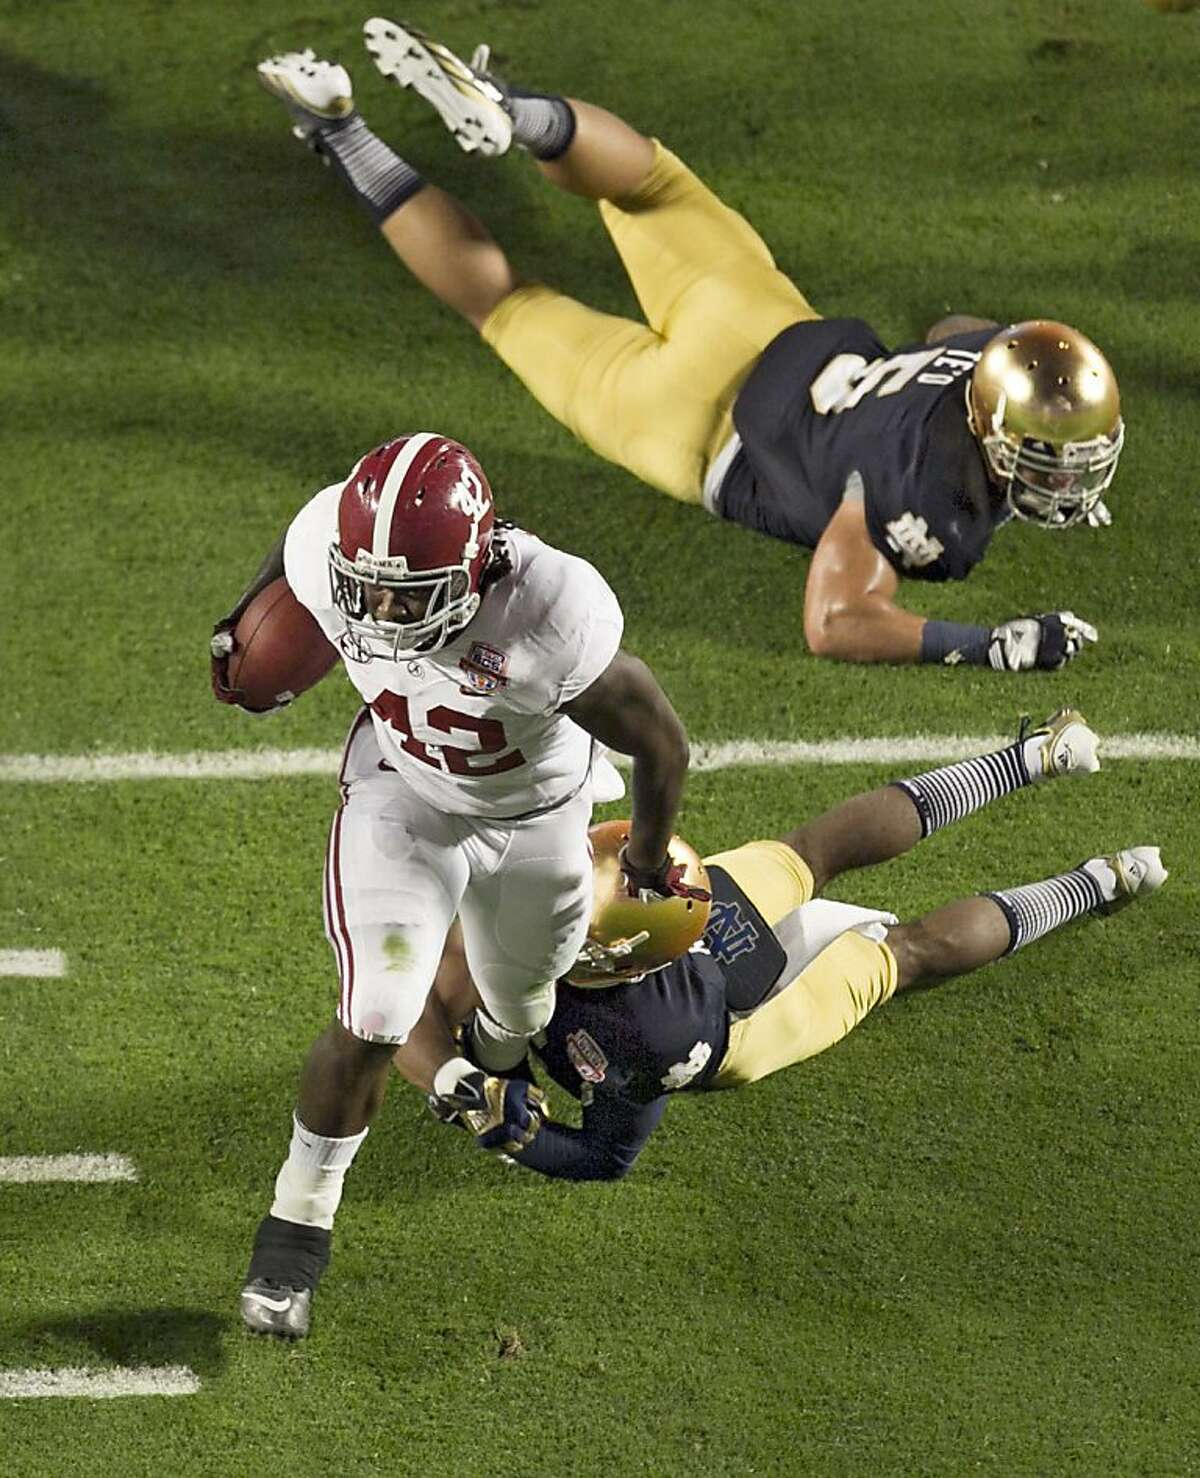 Alabama crushes Notre Dame, 42-14 in title game